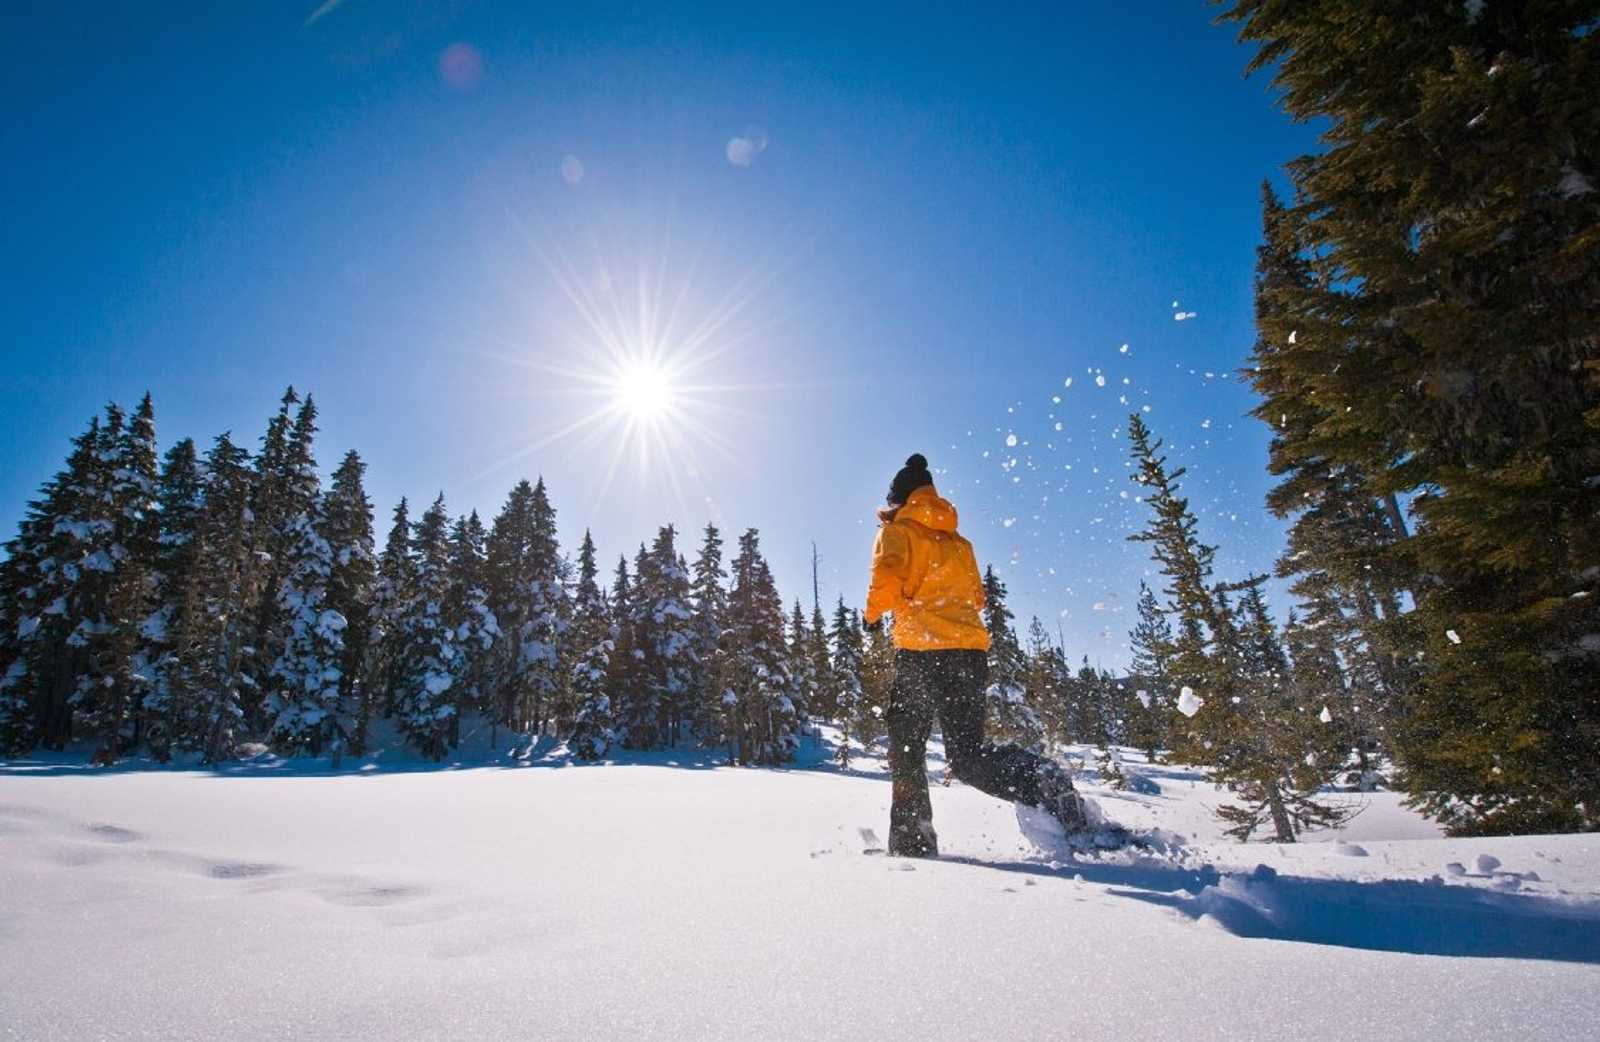 Snowshoe hike in winter BC